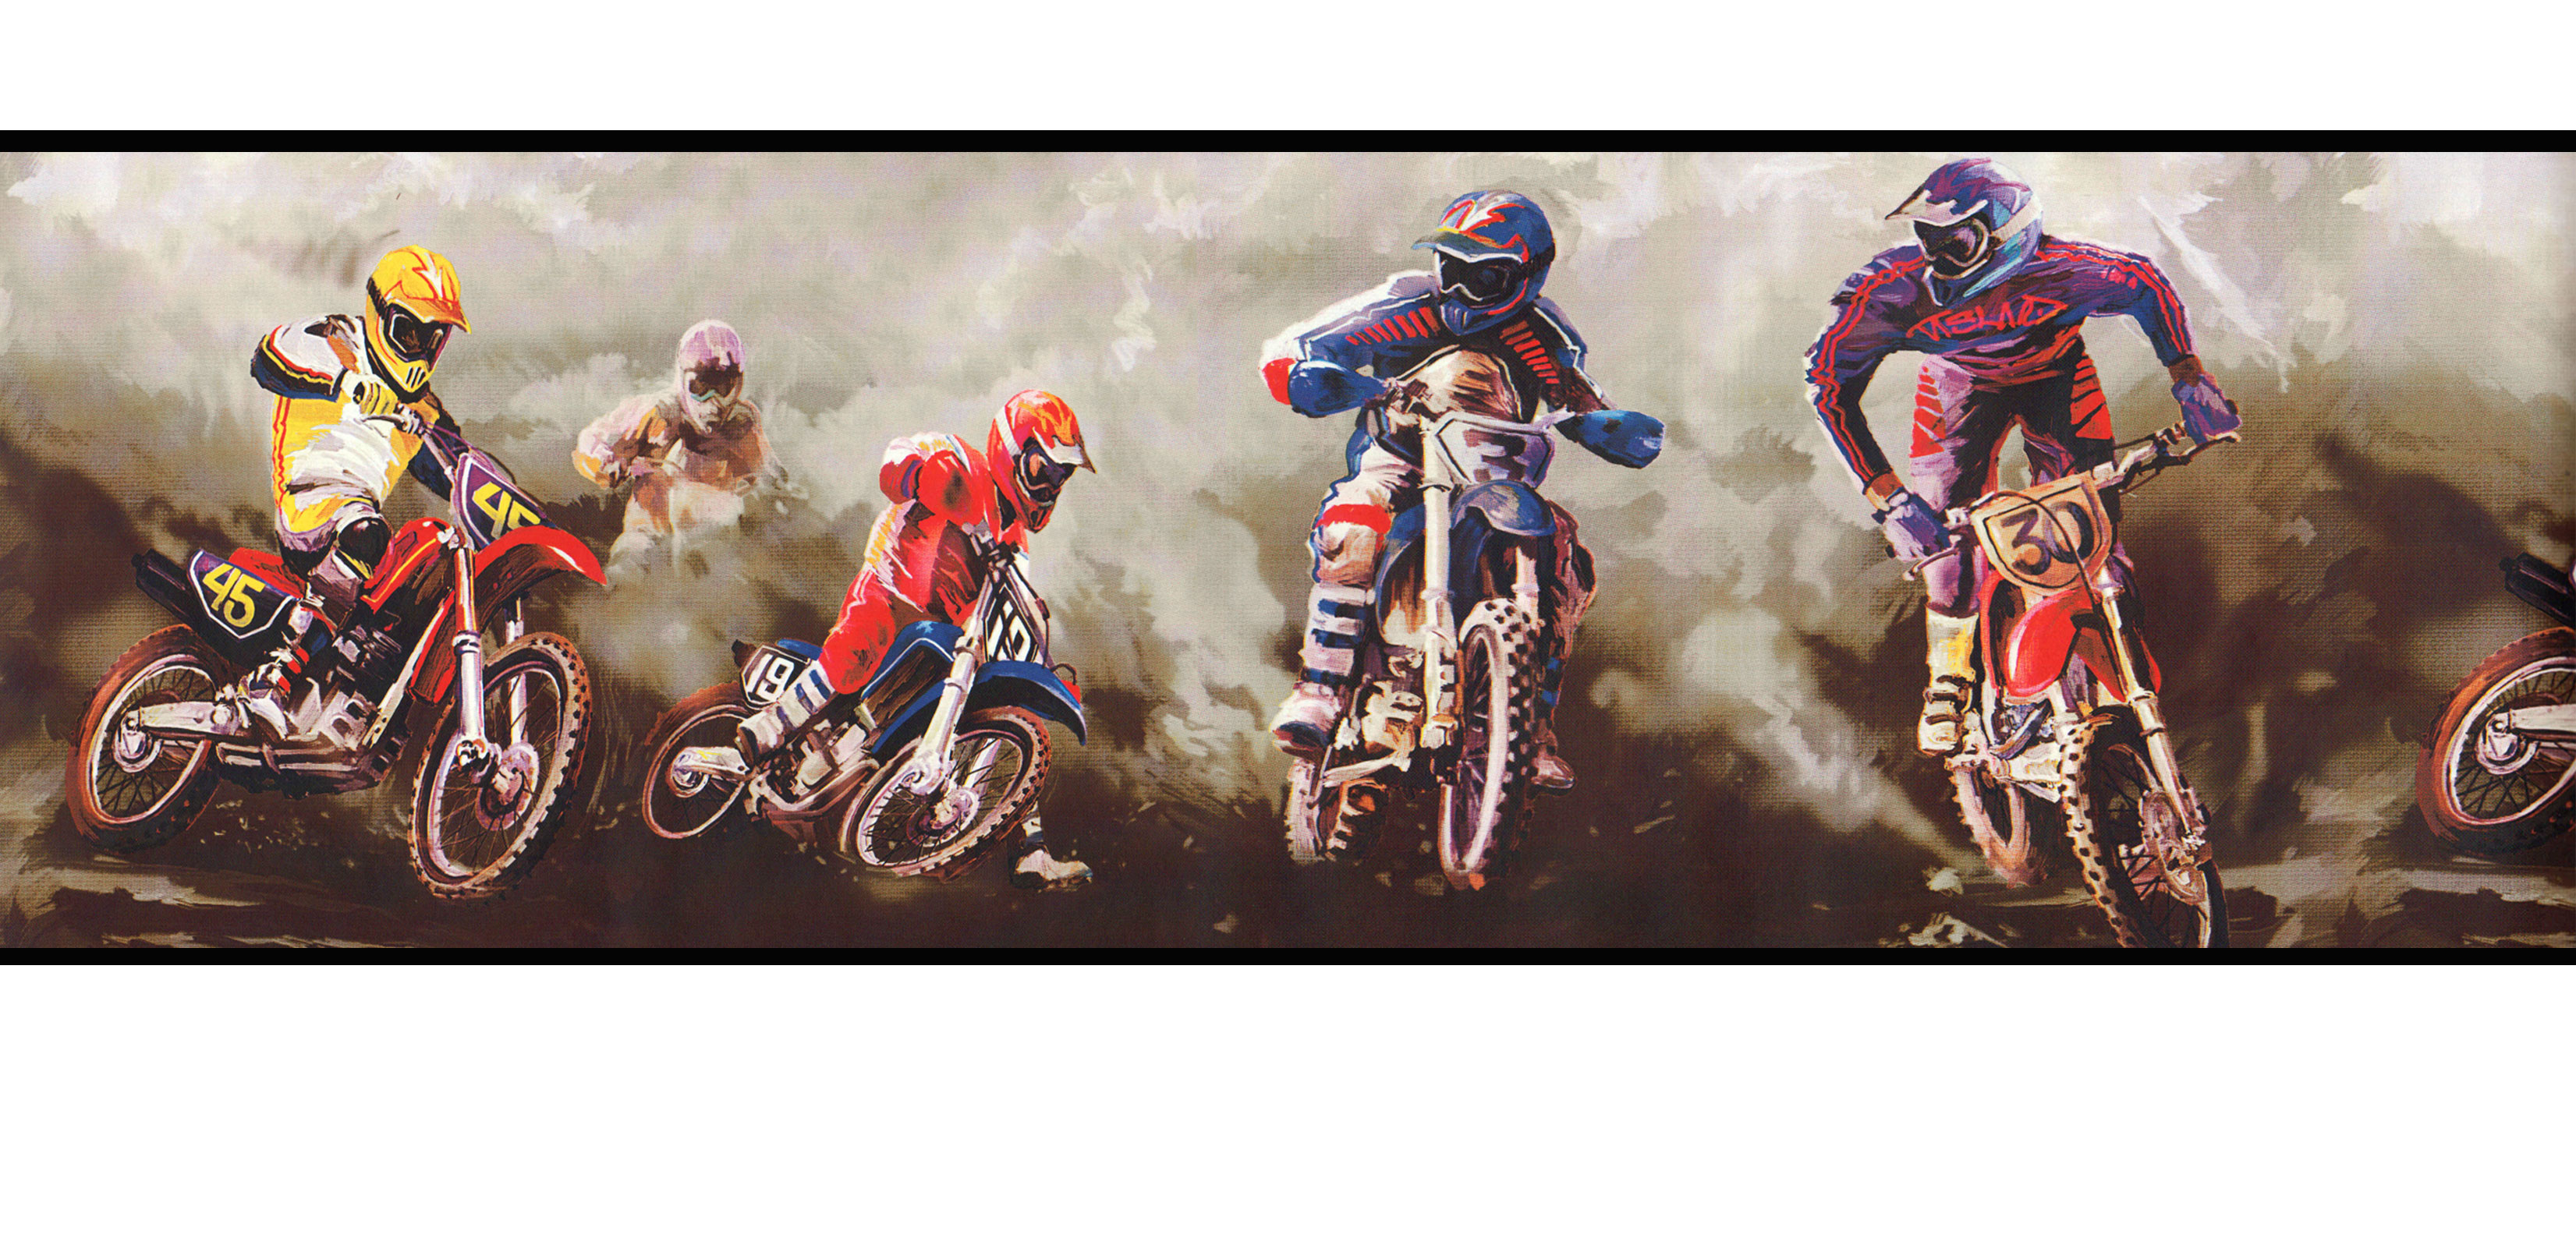 motorcross dirt bike sports 9 inches wide wall paper border. Black Bedroom Furniture Sets. Home Design Ideas